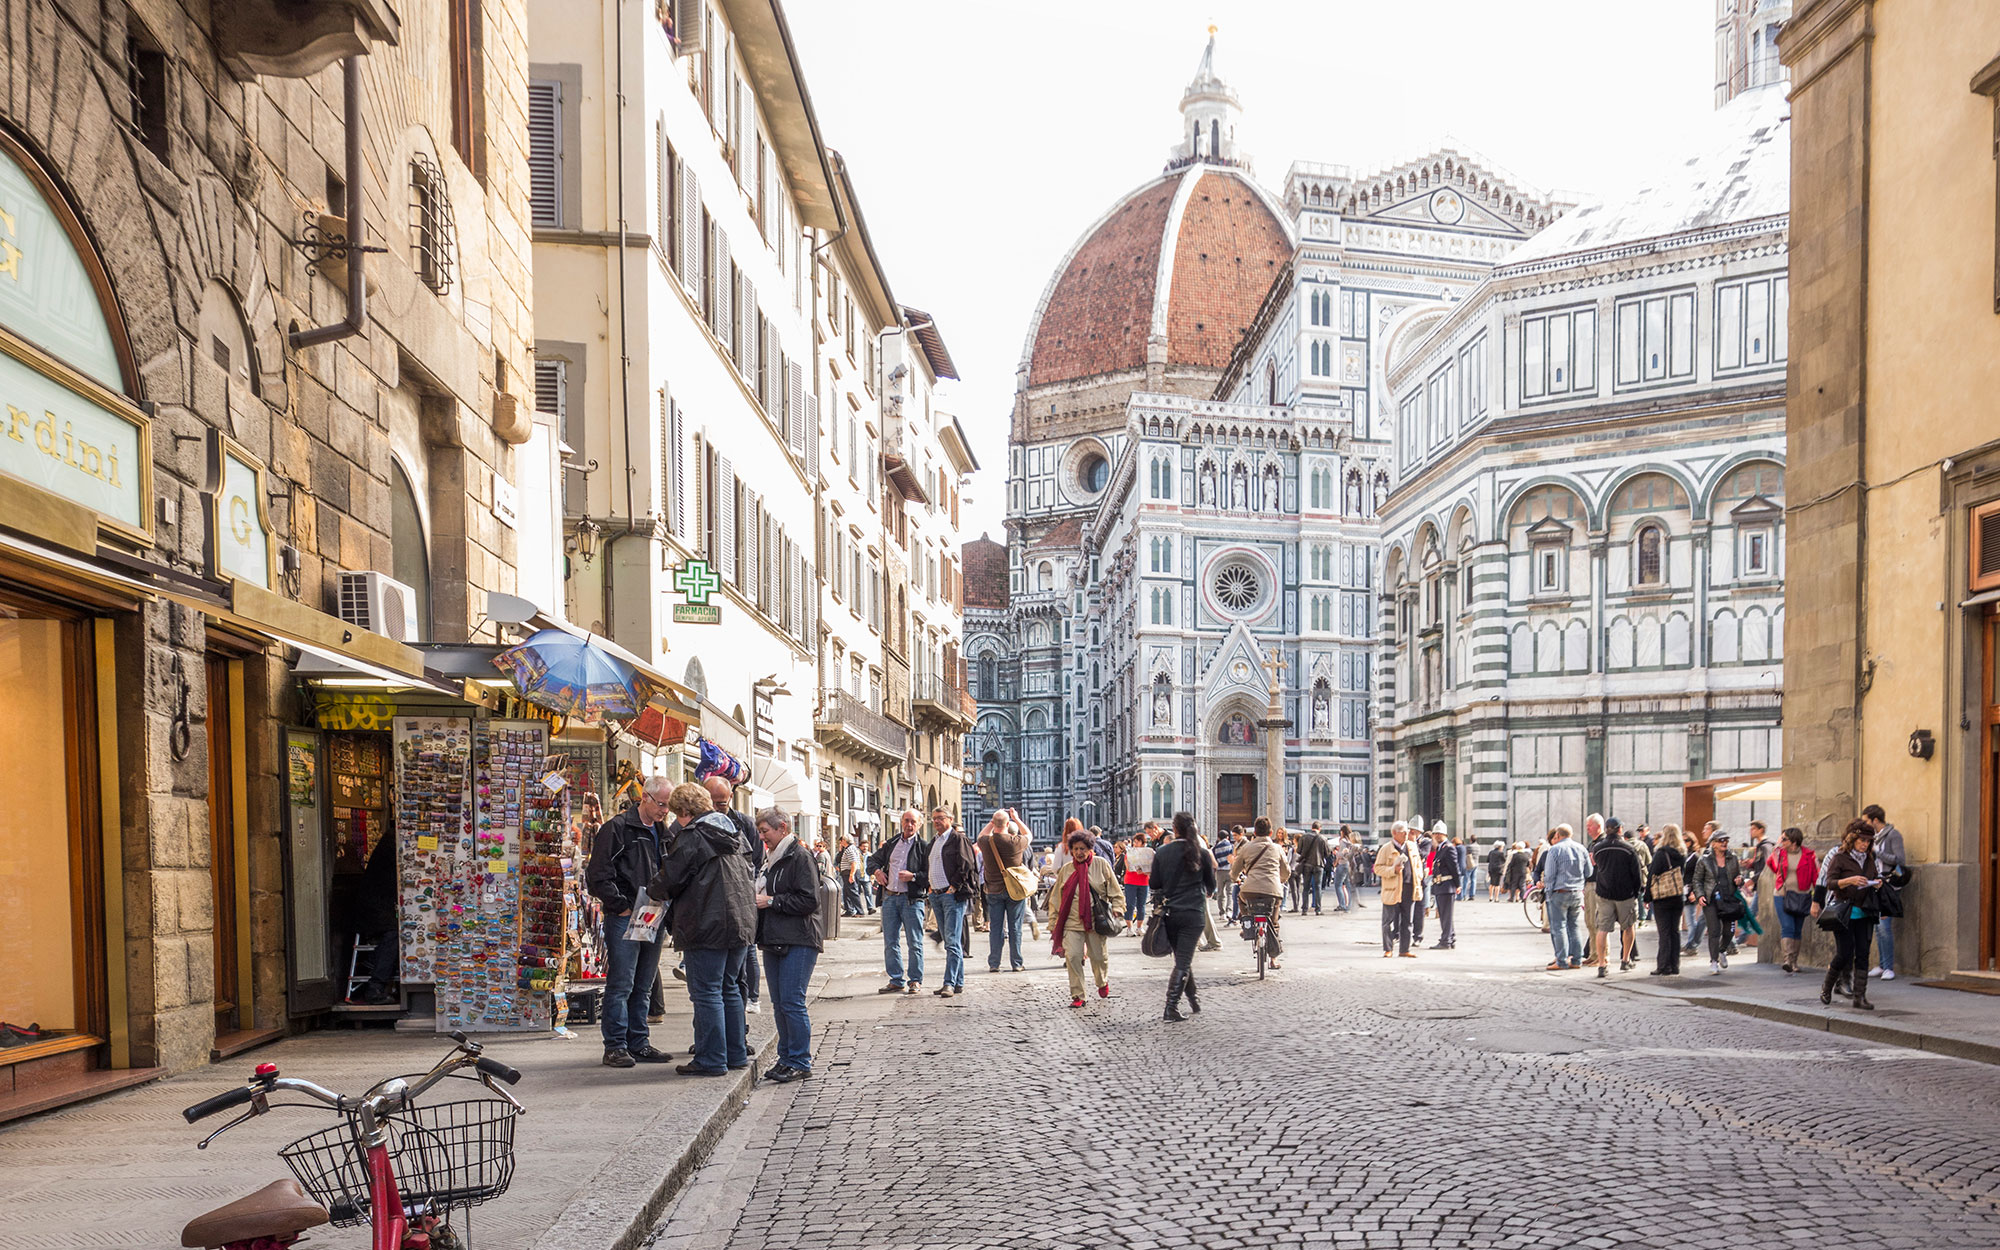 Street scene in Florence Italy